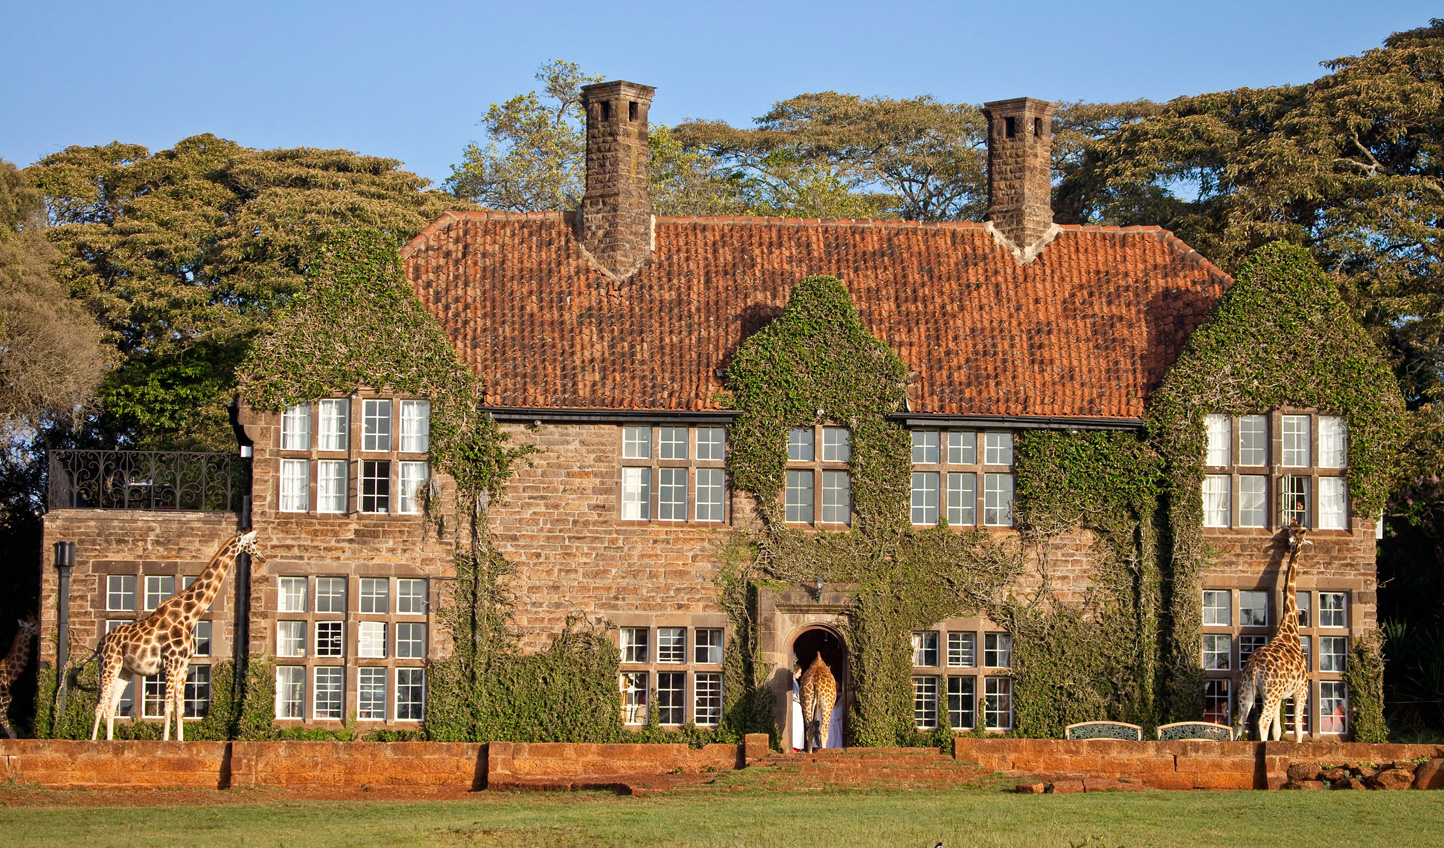 Stay at the stunning 1930s manor house hotel, Giraffe Manor, on your first night